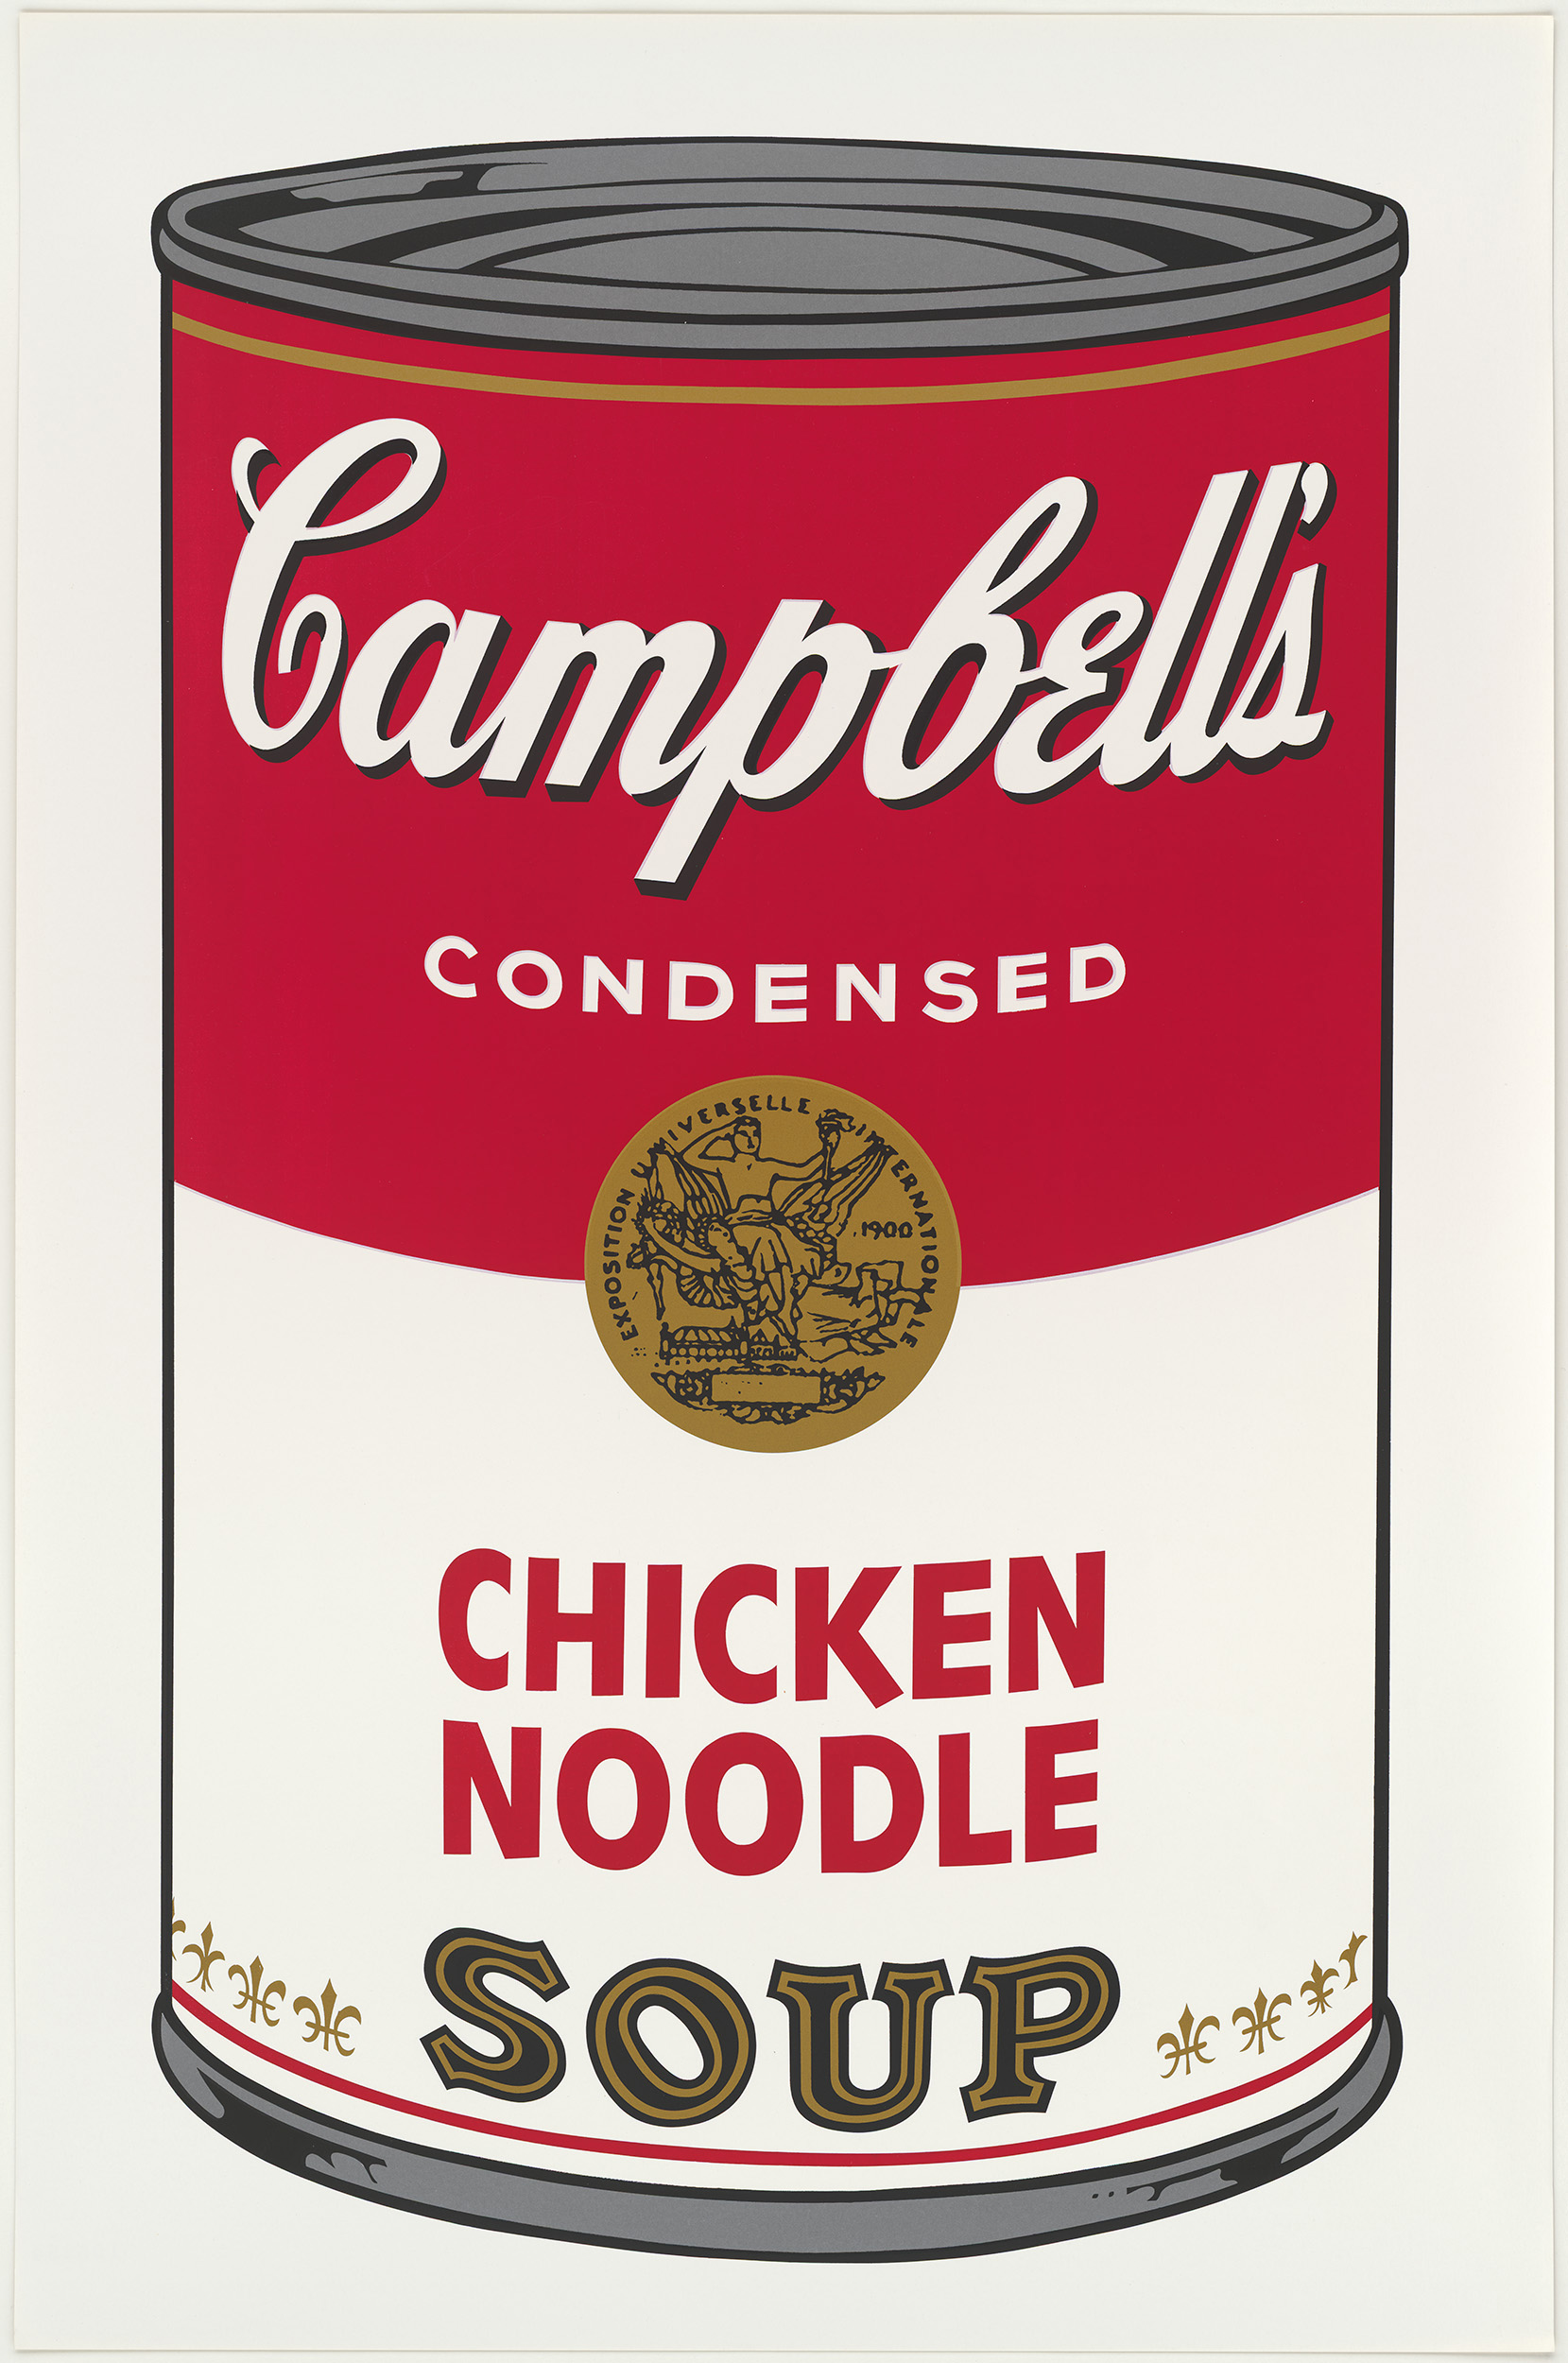 Andy Warhol (1928–1987) Campbell's Soup I (Blatt 2, Chicken Noodle), 1968 Siebdruck, je 88,9 x 58,4 cm Dauerleihgabe der Stiftung Hamburger Kunstsammlungen © 2021 The Andy Warhol Foundation for the Visual Arts, Inc. / Licensed by Artists Rights Society (A